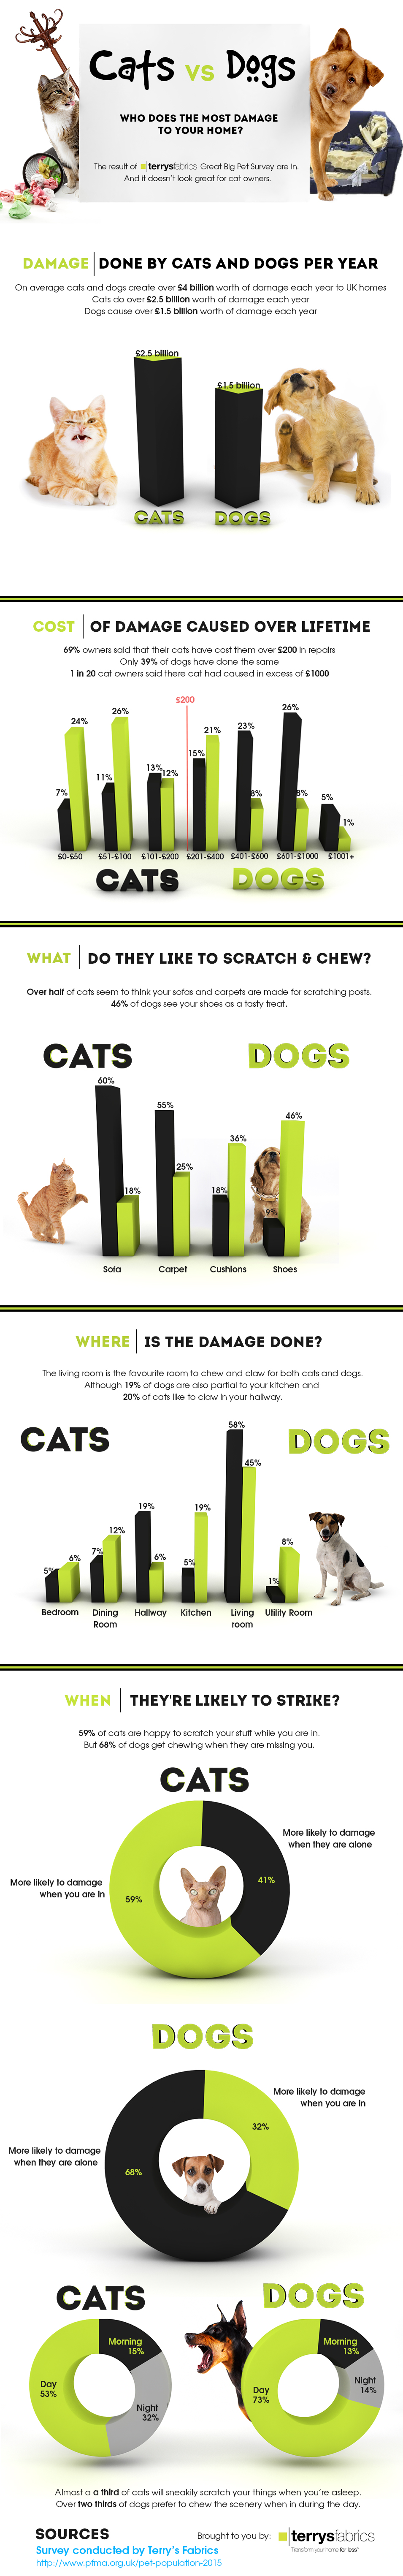 Cats vs Dogs: Who Does the Most Damage?